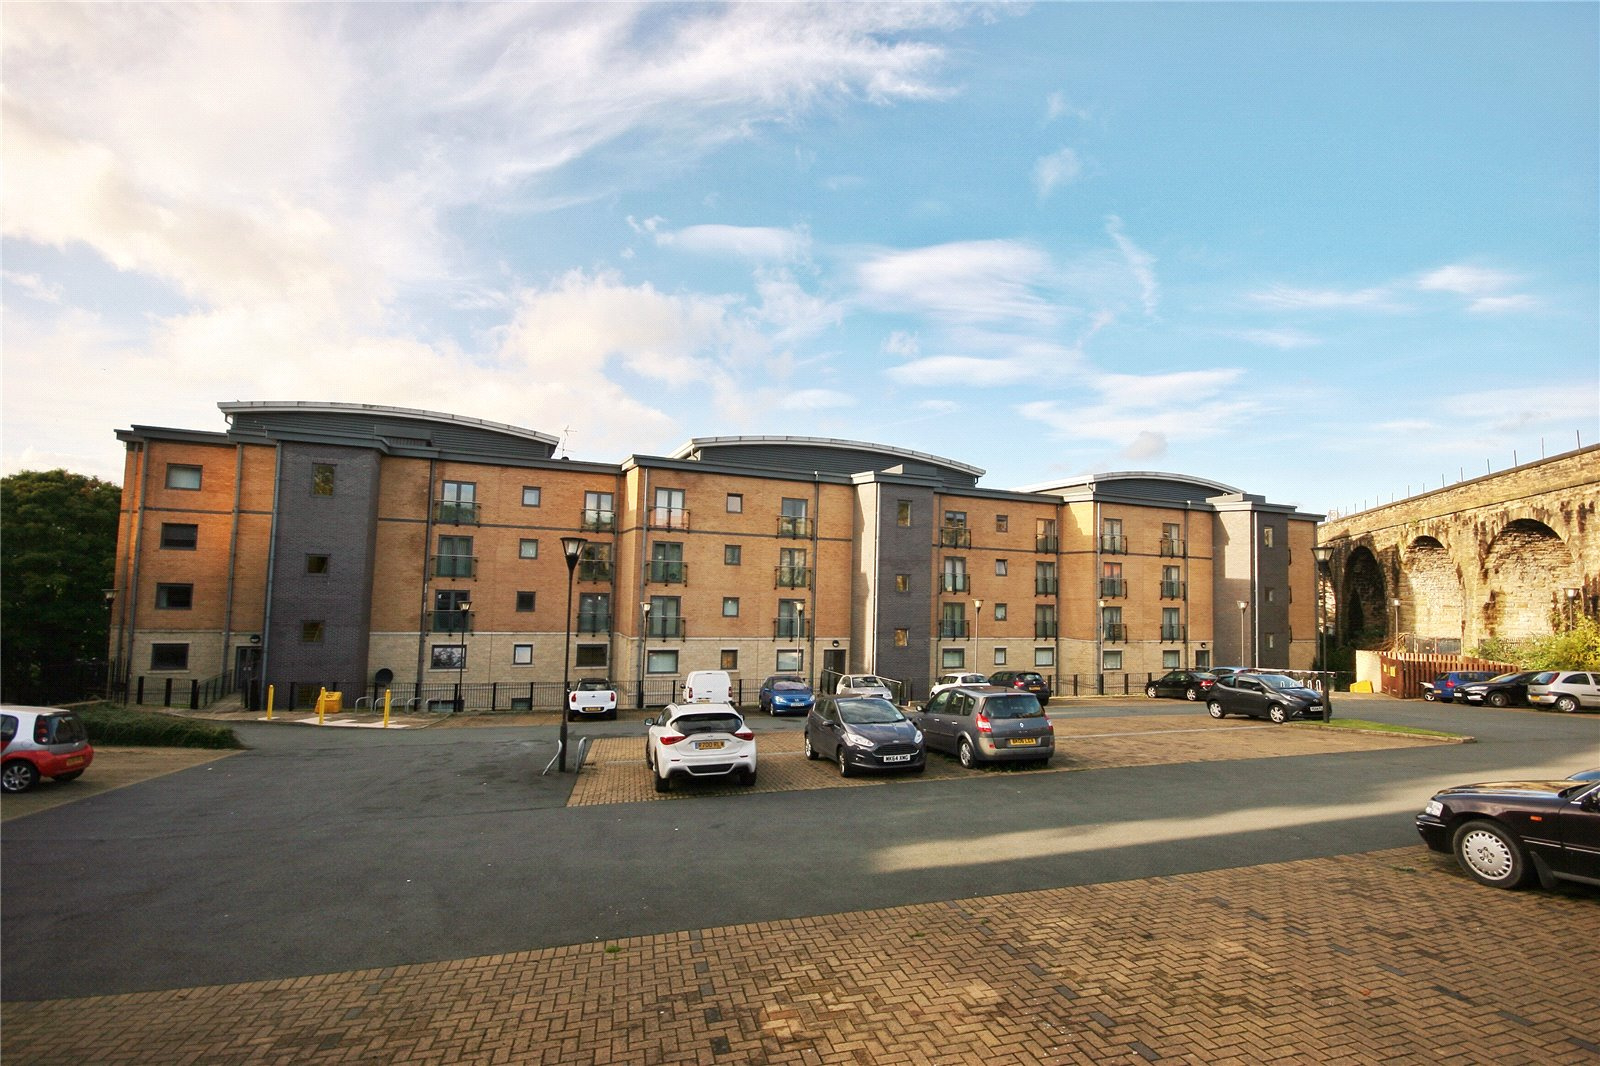 2 Bedrooms Apartment Flat for sale in The Ironworks, Birkhouse Lane, Huddersfield, West Yorkshire, HD4